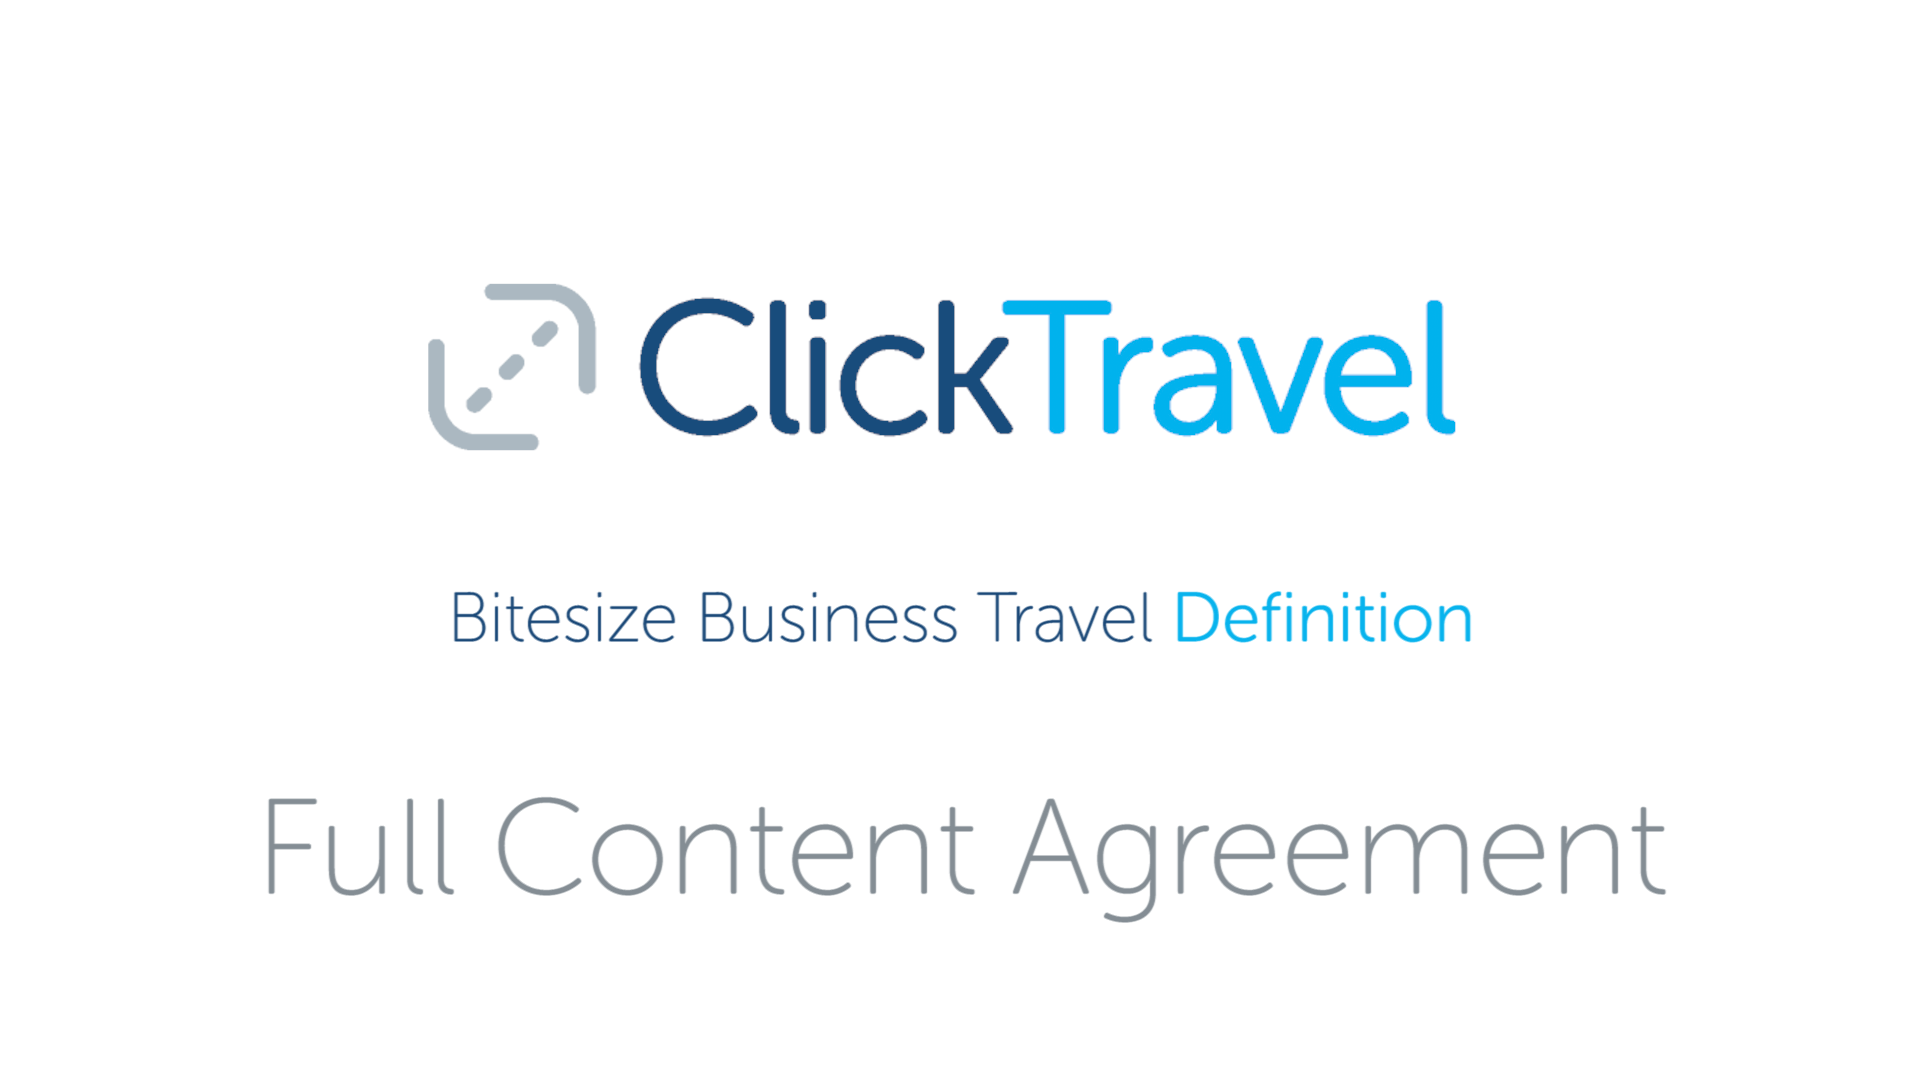 [VIDEO] Bitesize business travel definition: full content agreement